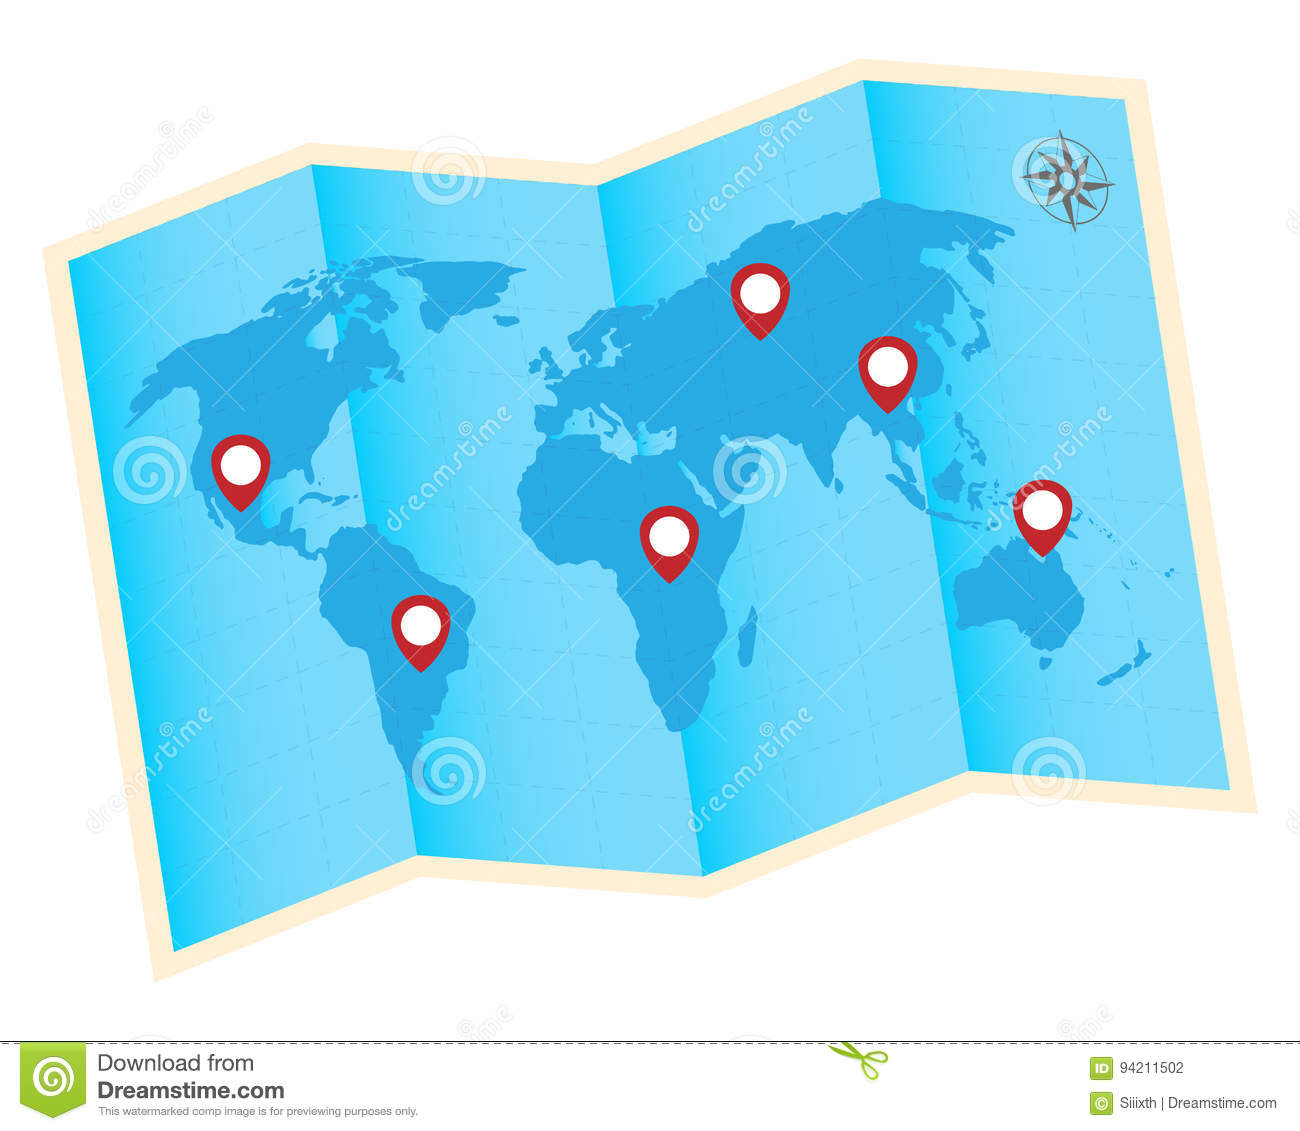 World Map Gps.Fold World Map With Red Gps Icon Stock Vector Illustration Of